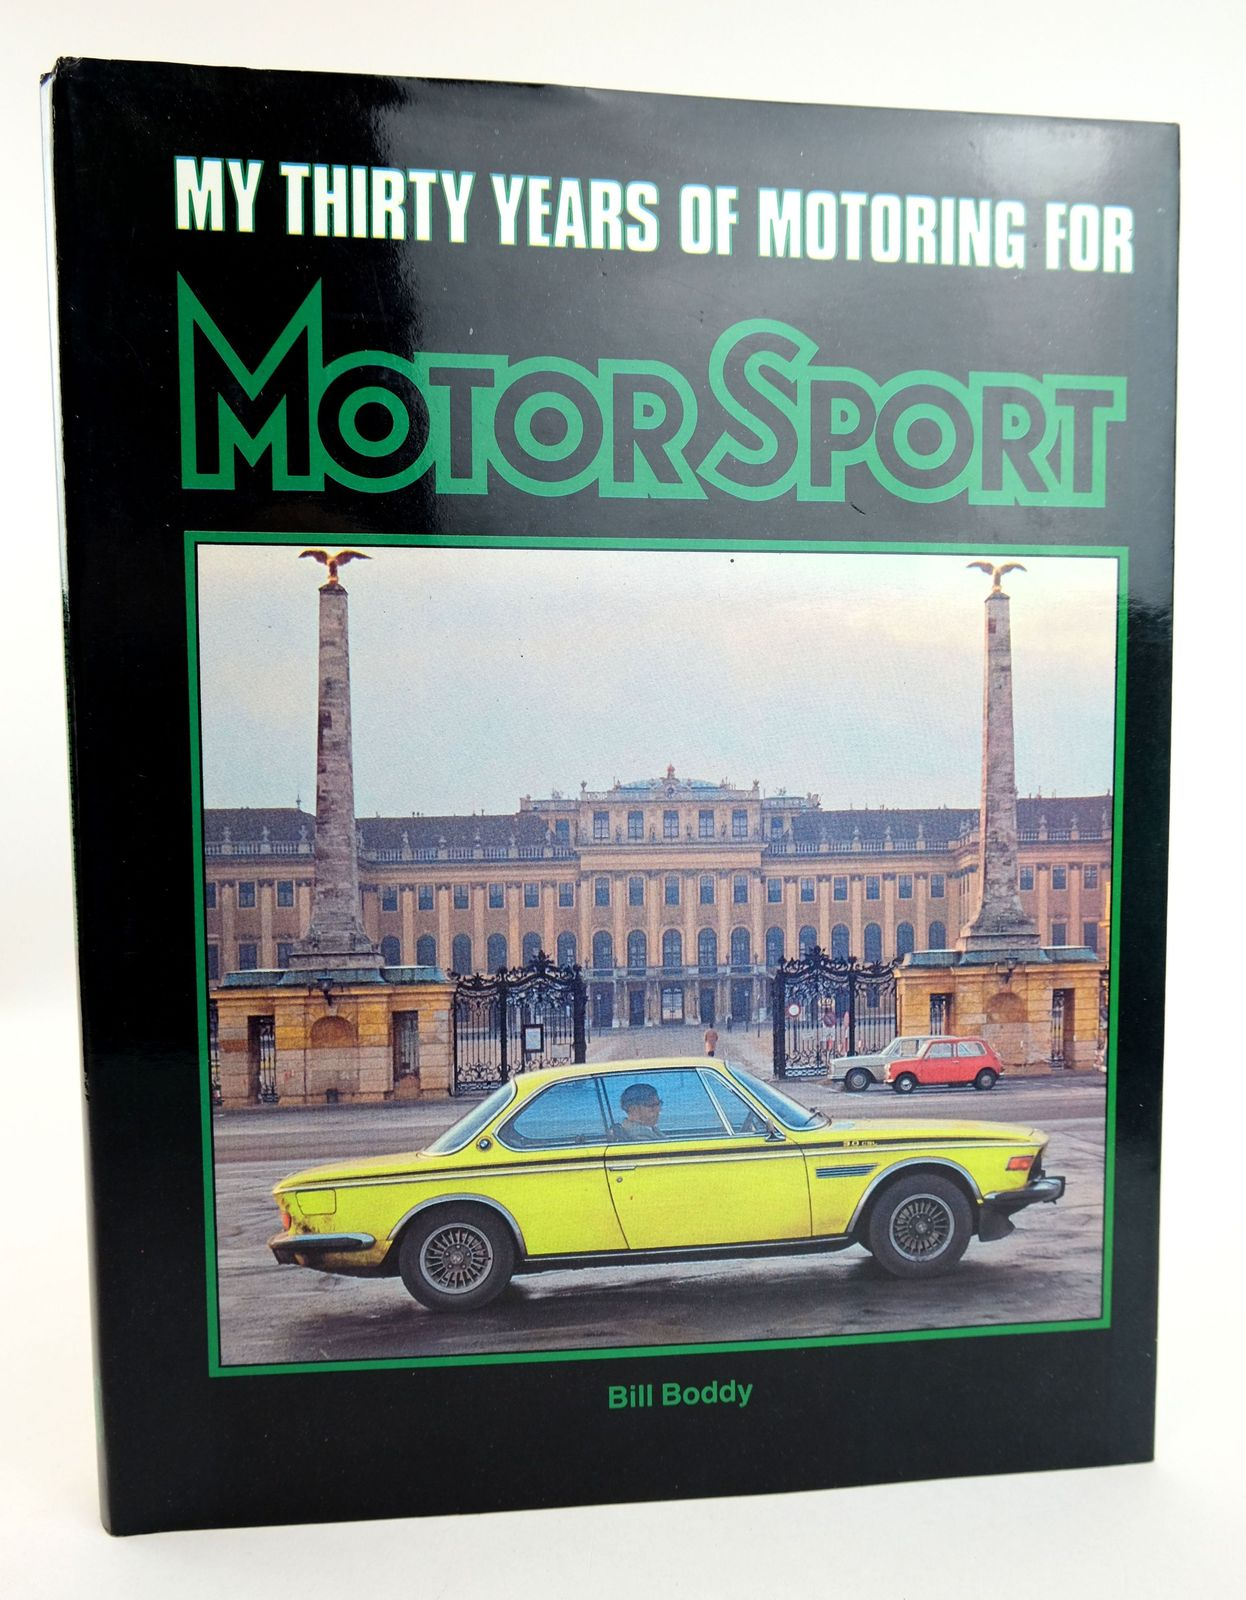 Photo of MY THIRTY YEARS OF MOTORING FOR MOTOR SPORT written by Boddy, Bill published by Grenville Publishing Company Limited (STOCK CODE: 1818994)  for sale by Stella & Rose's Books